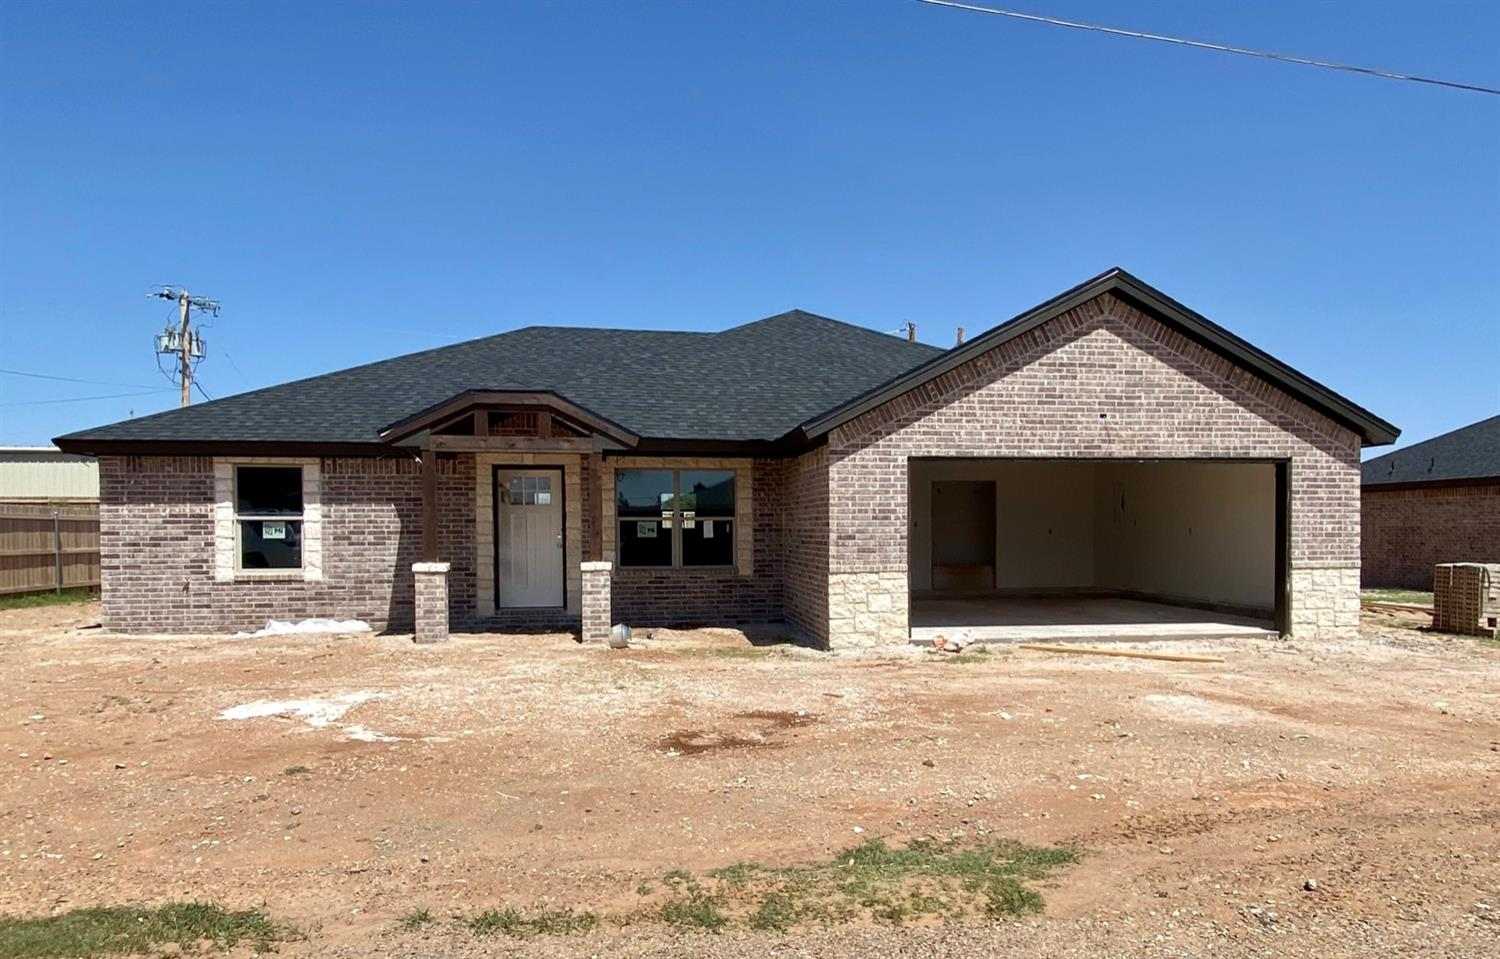 New construction in New Deal! This 3 bedroom 2 bath home is made for entertaining! The open concept living room and kitchen are complete with vaulted ceilings. Escape to a large isolated master that features granite and a walk in closet. Sit on the back patio and enjoy a great West Texas evening! Don't miss this one!